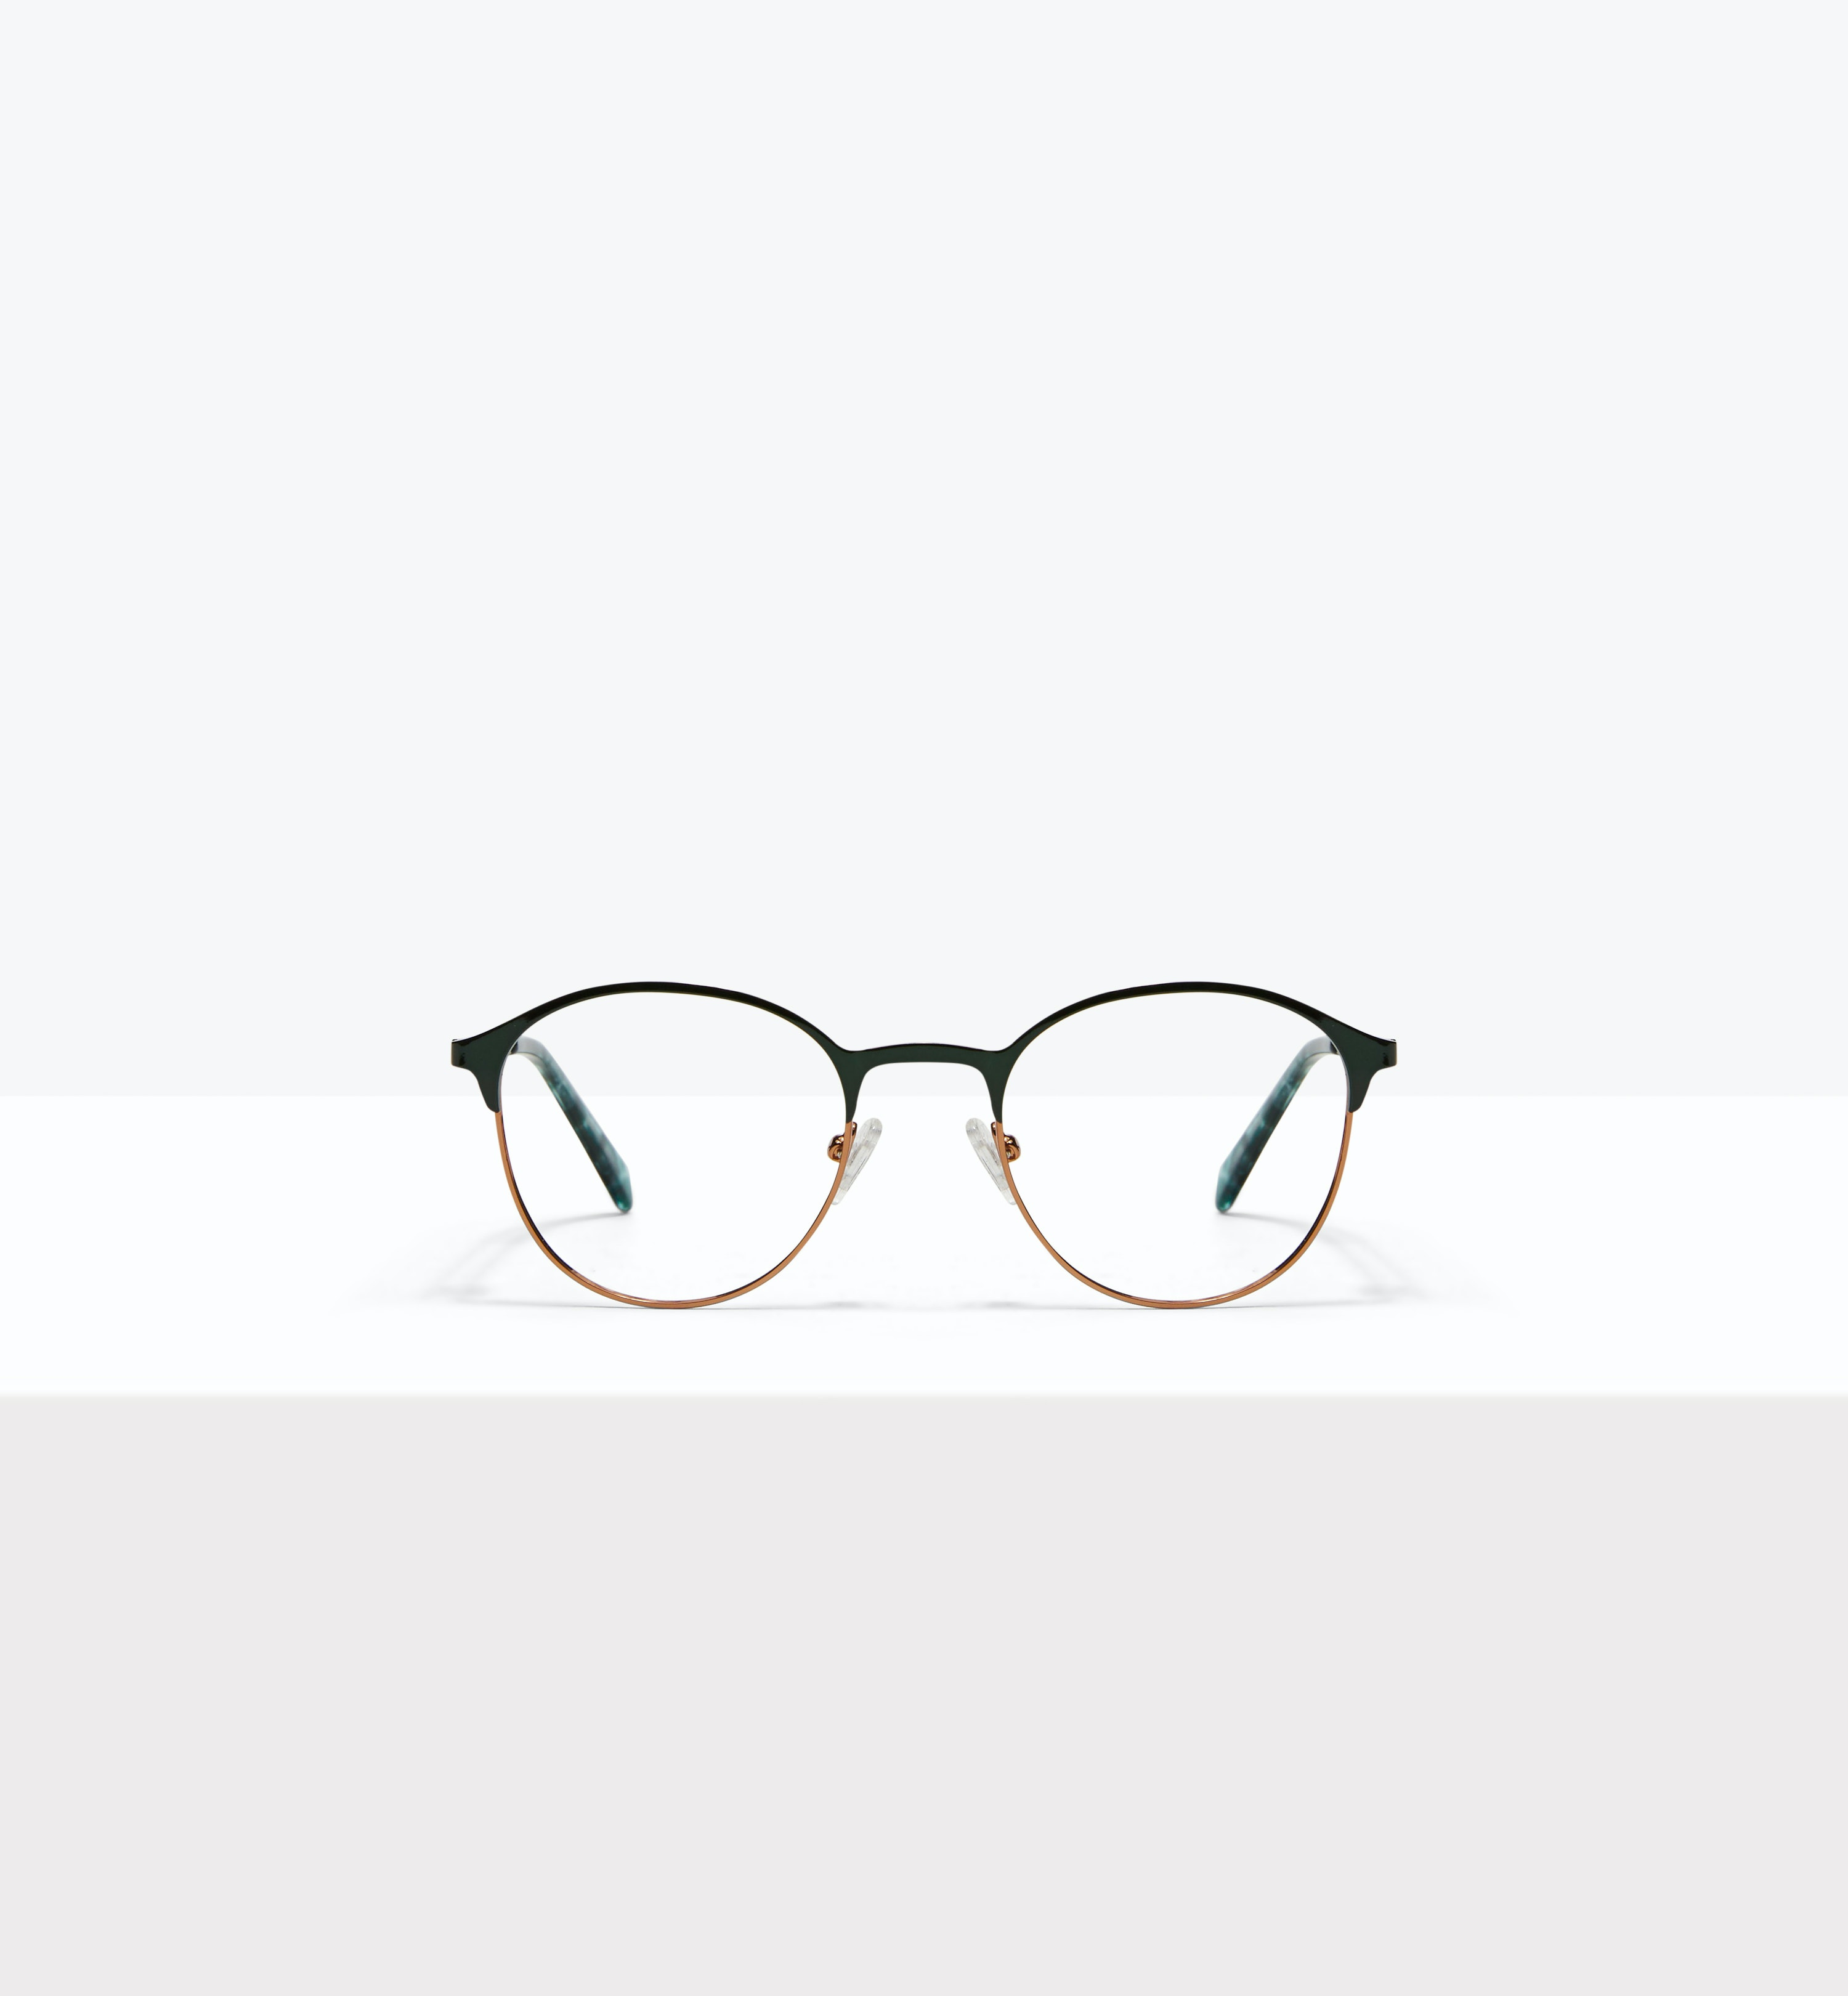 Affordable Fashion Glasses Round Eyeglasses Women Bay II Emeraude Front